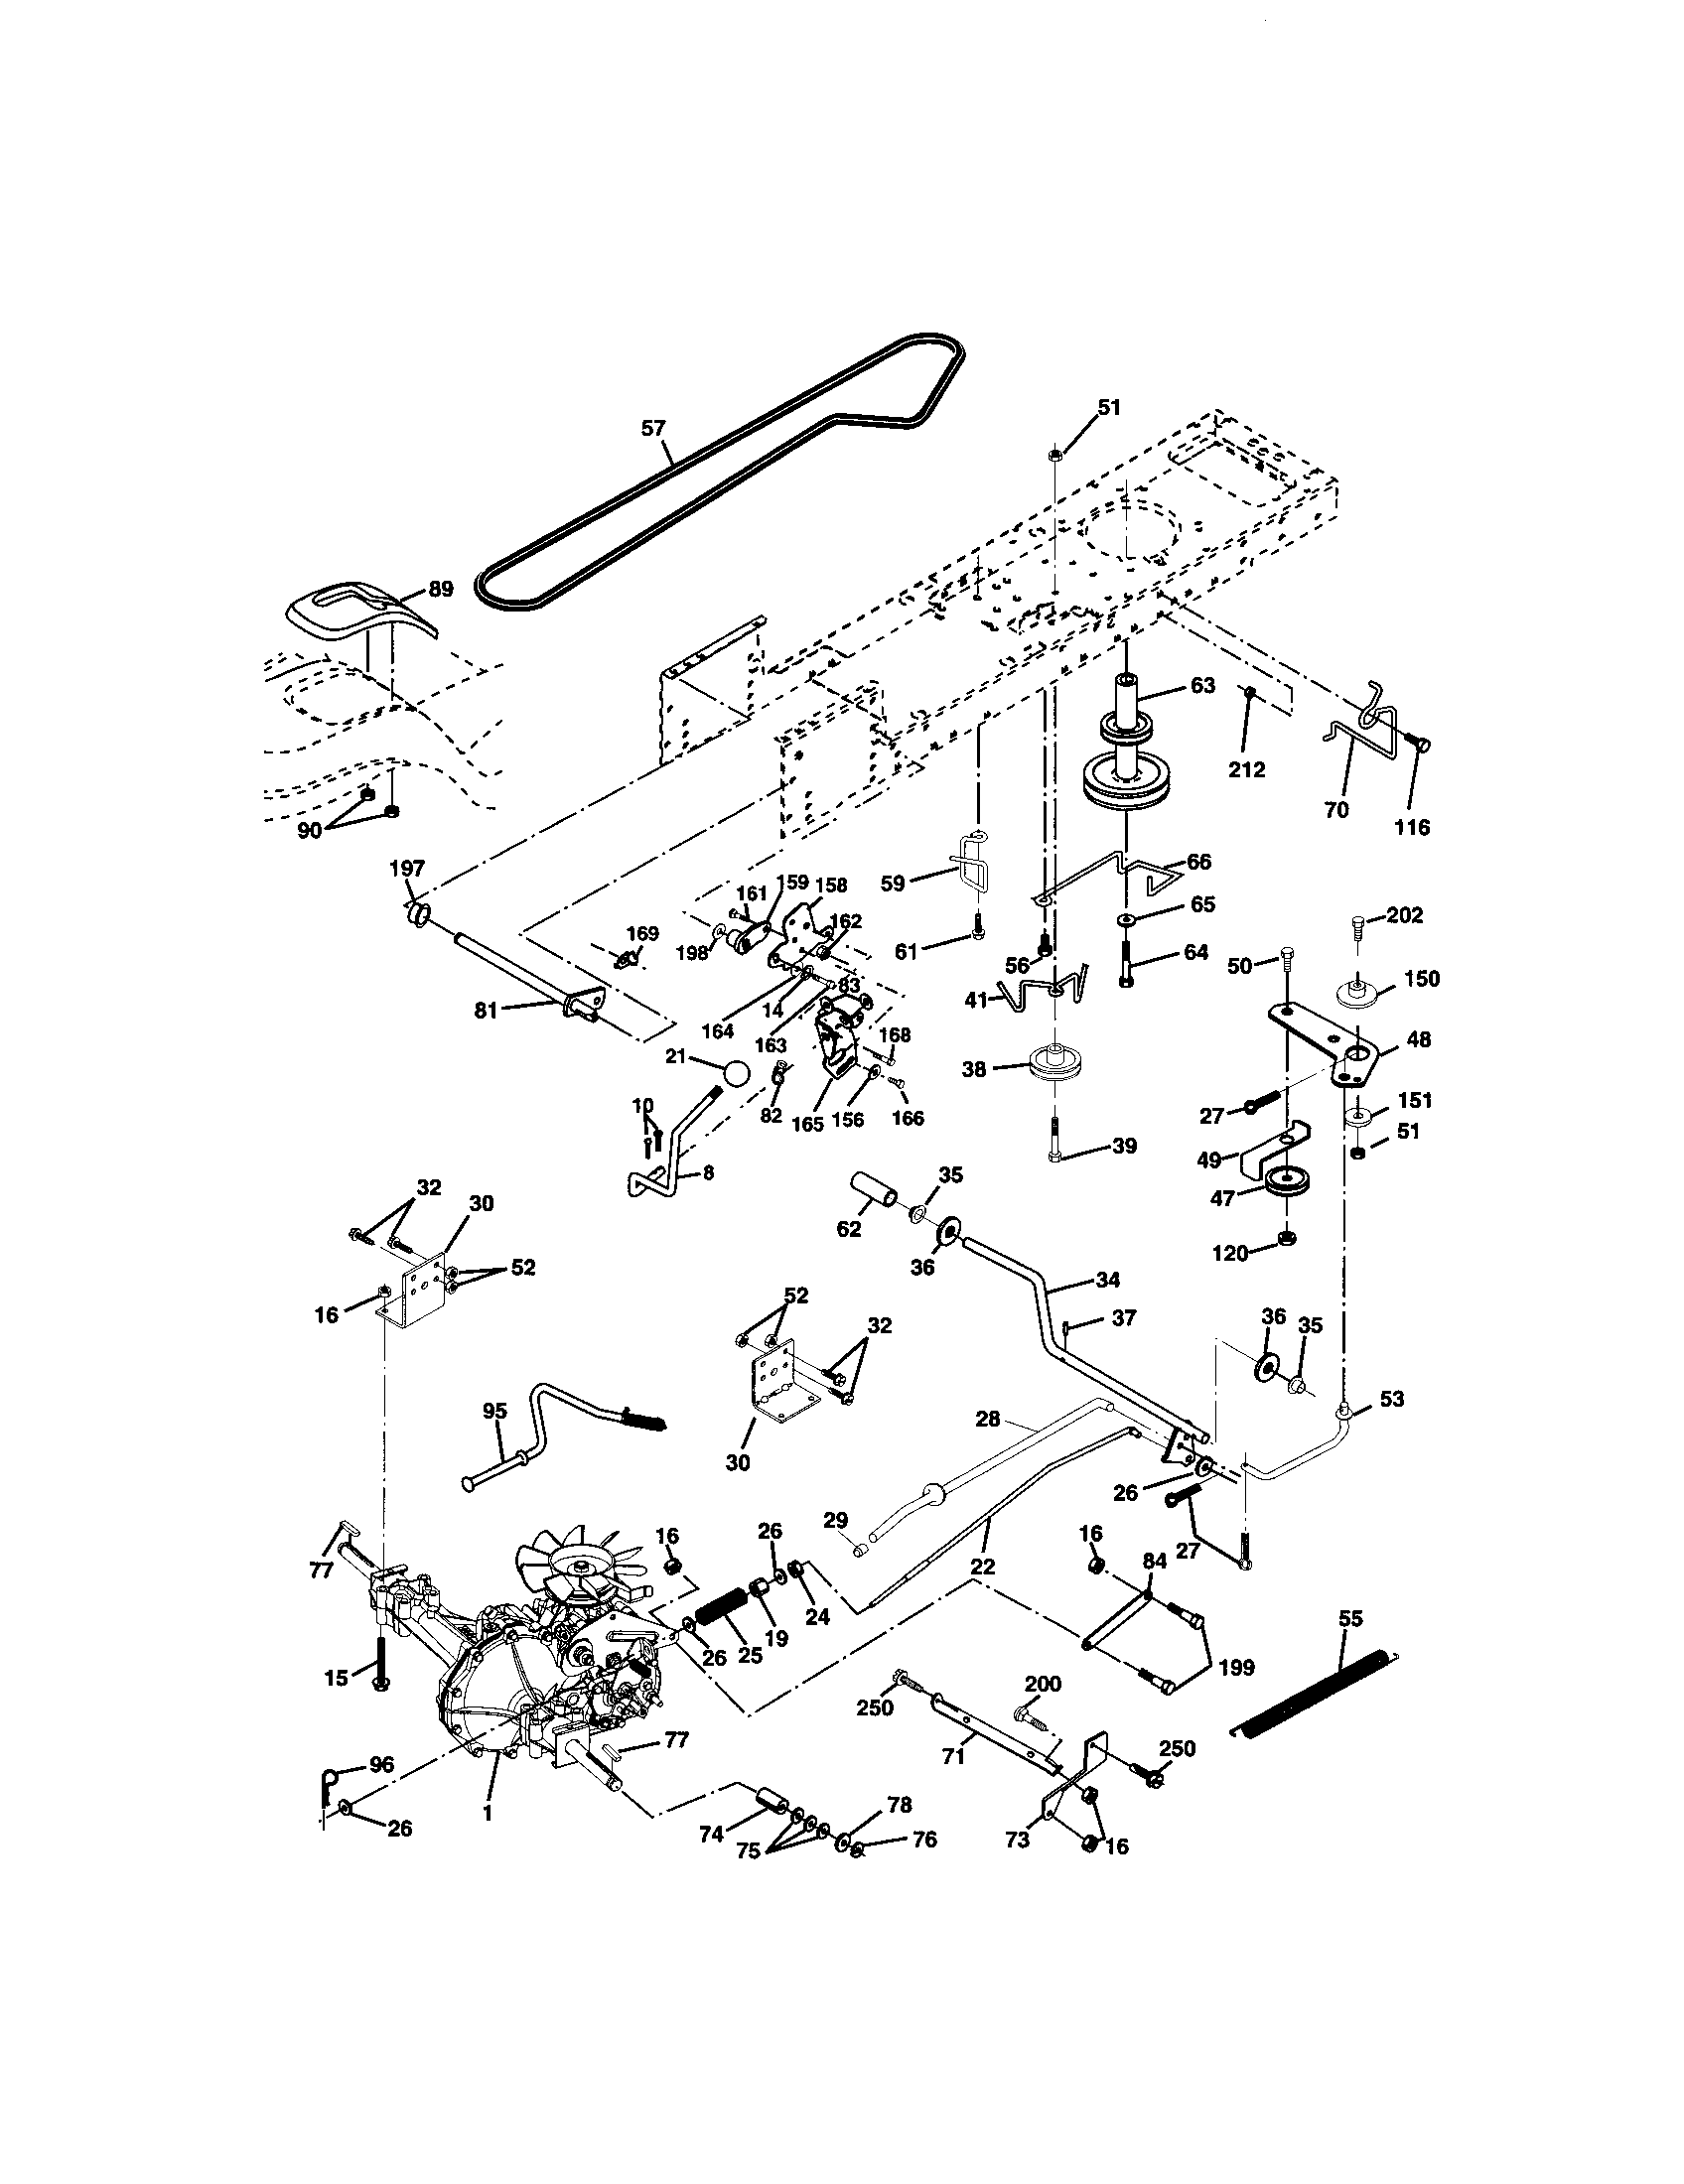 GROUND DRIVE Diagram & Parts List for Model 917272462